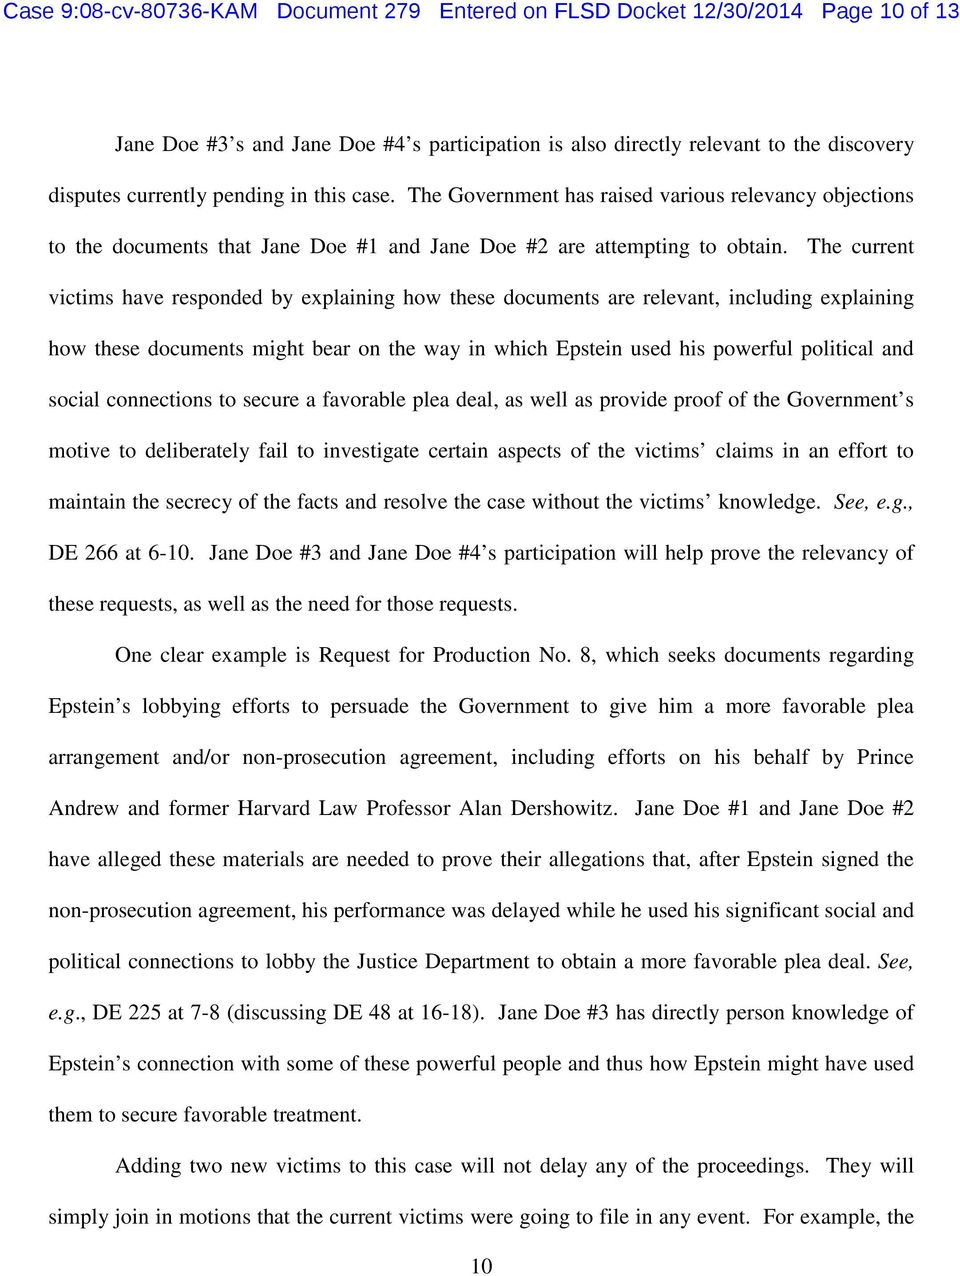 The current victims have responded by explaining how these documents are relevant, including explaining how these documents might bear on the way in which Epstein used his powerful political and